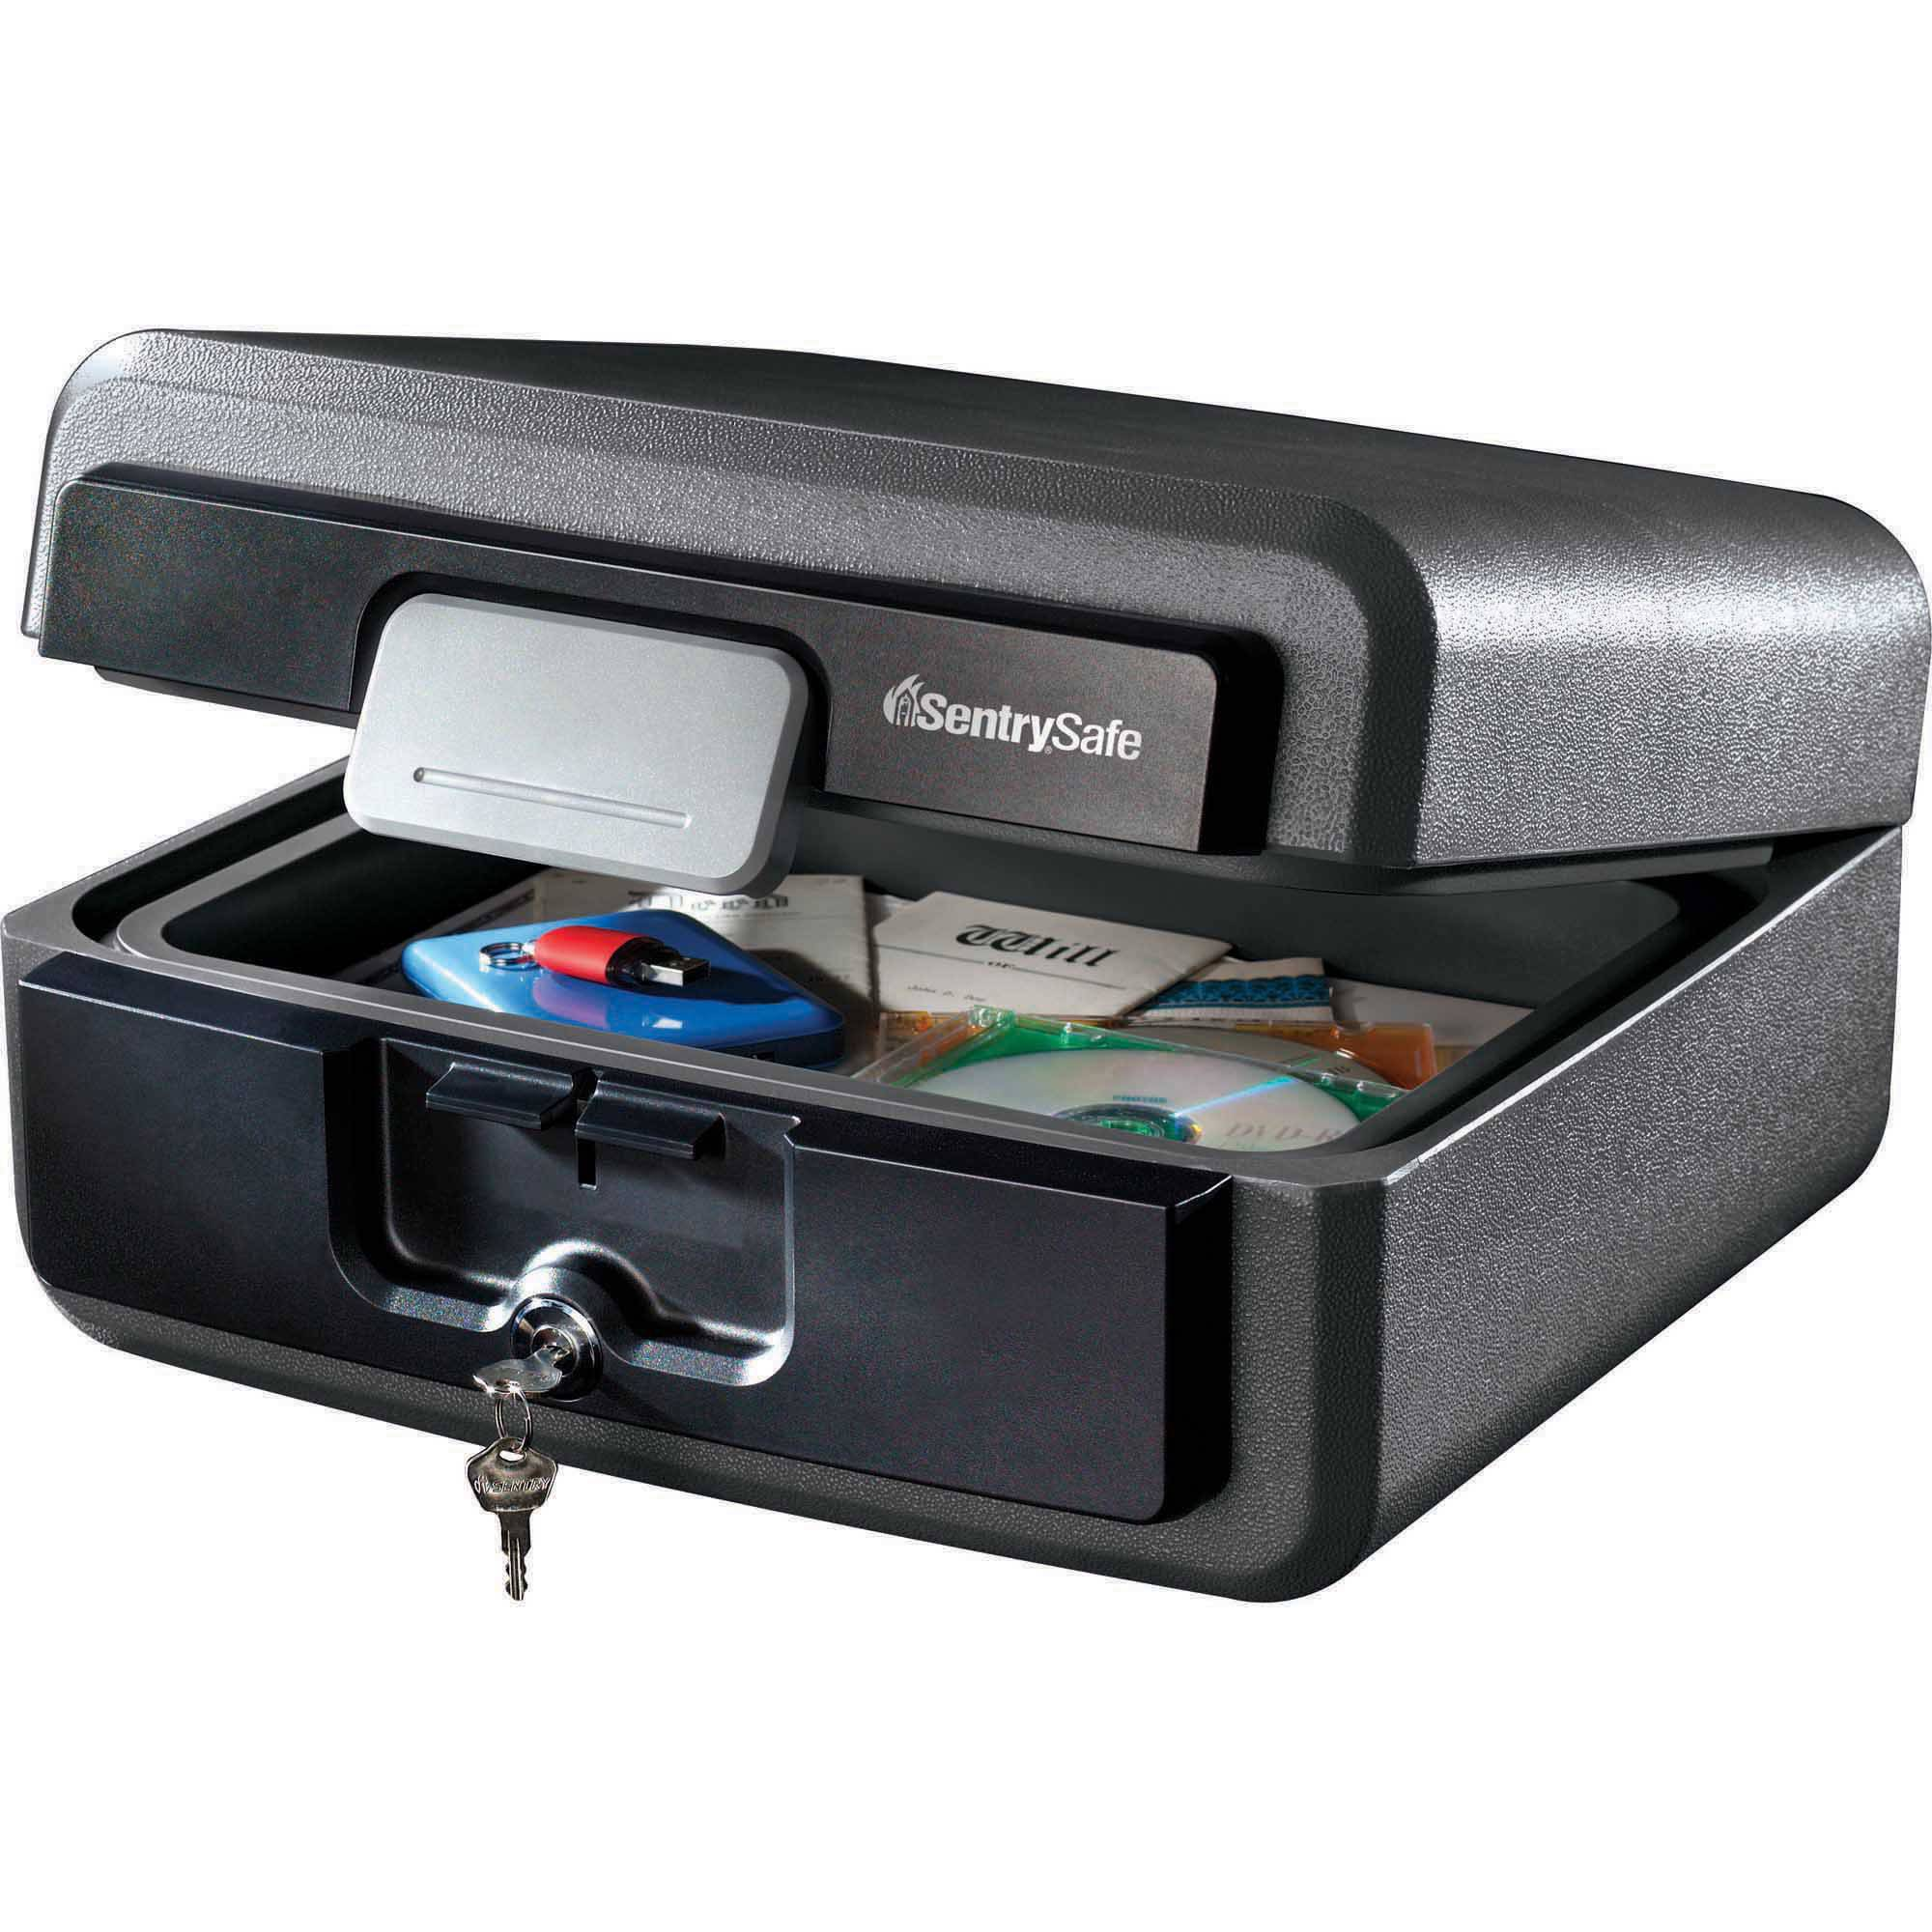 SentrySafe 0.37 cu. ft. Waterproof Fire Chest, HD2100 by Generic